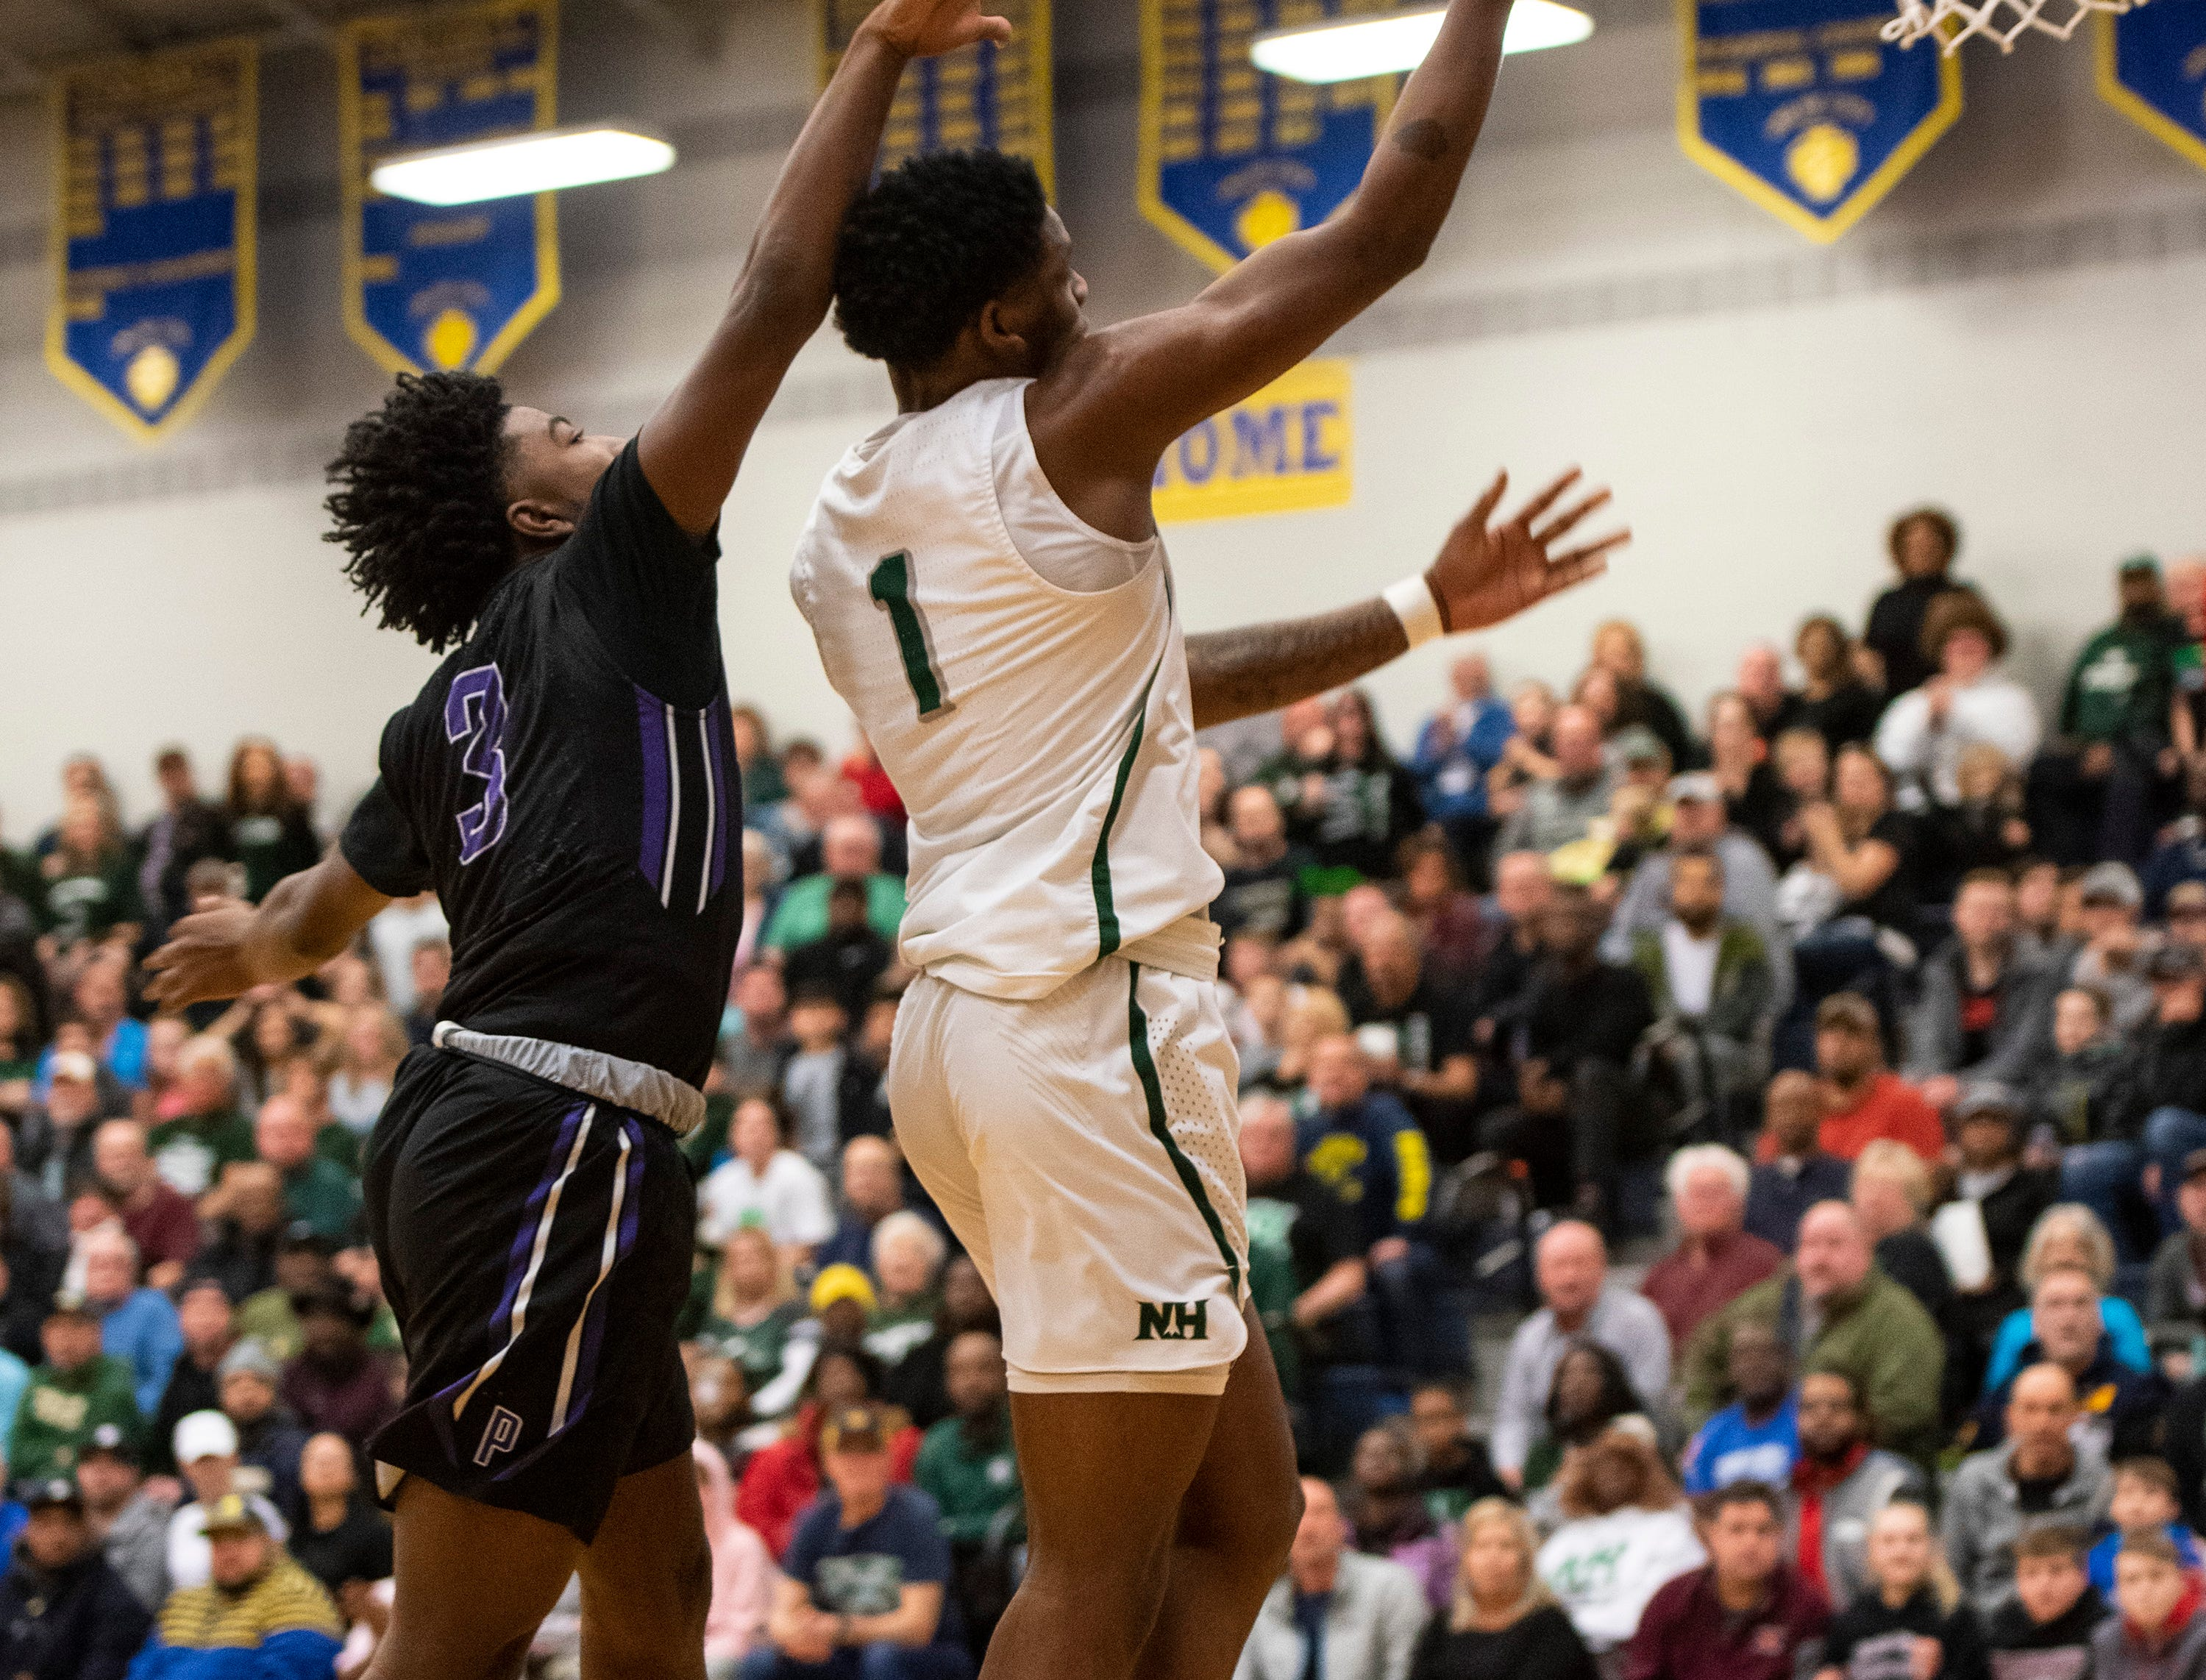 Pontiac High School's Ernesto Simpson Jr (3) reaches over New Haven's Romeo Weems to attempt to block a shot in the MHSAA Division 2 regional basketball finals Thursday, March 7, 2019 at Imlay City High School.